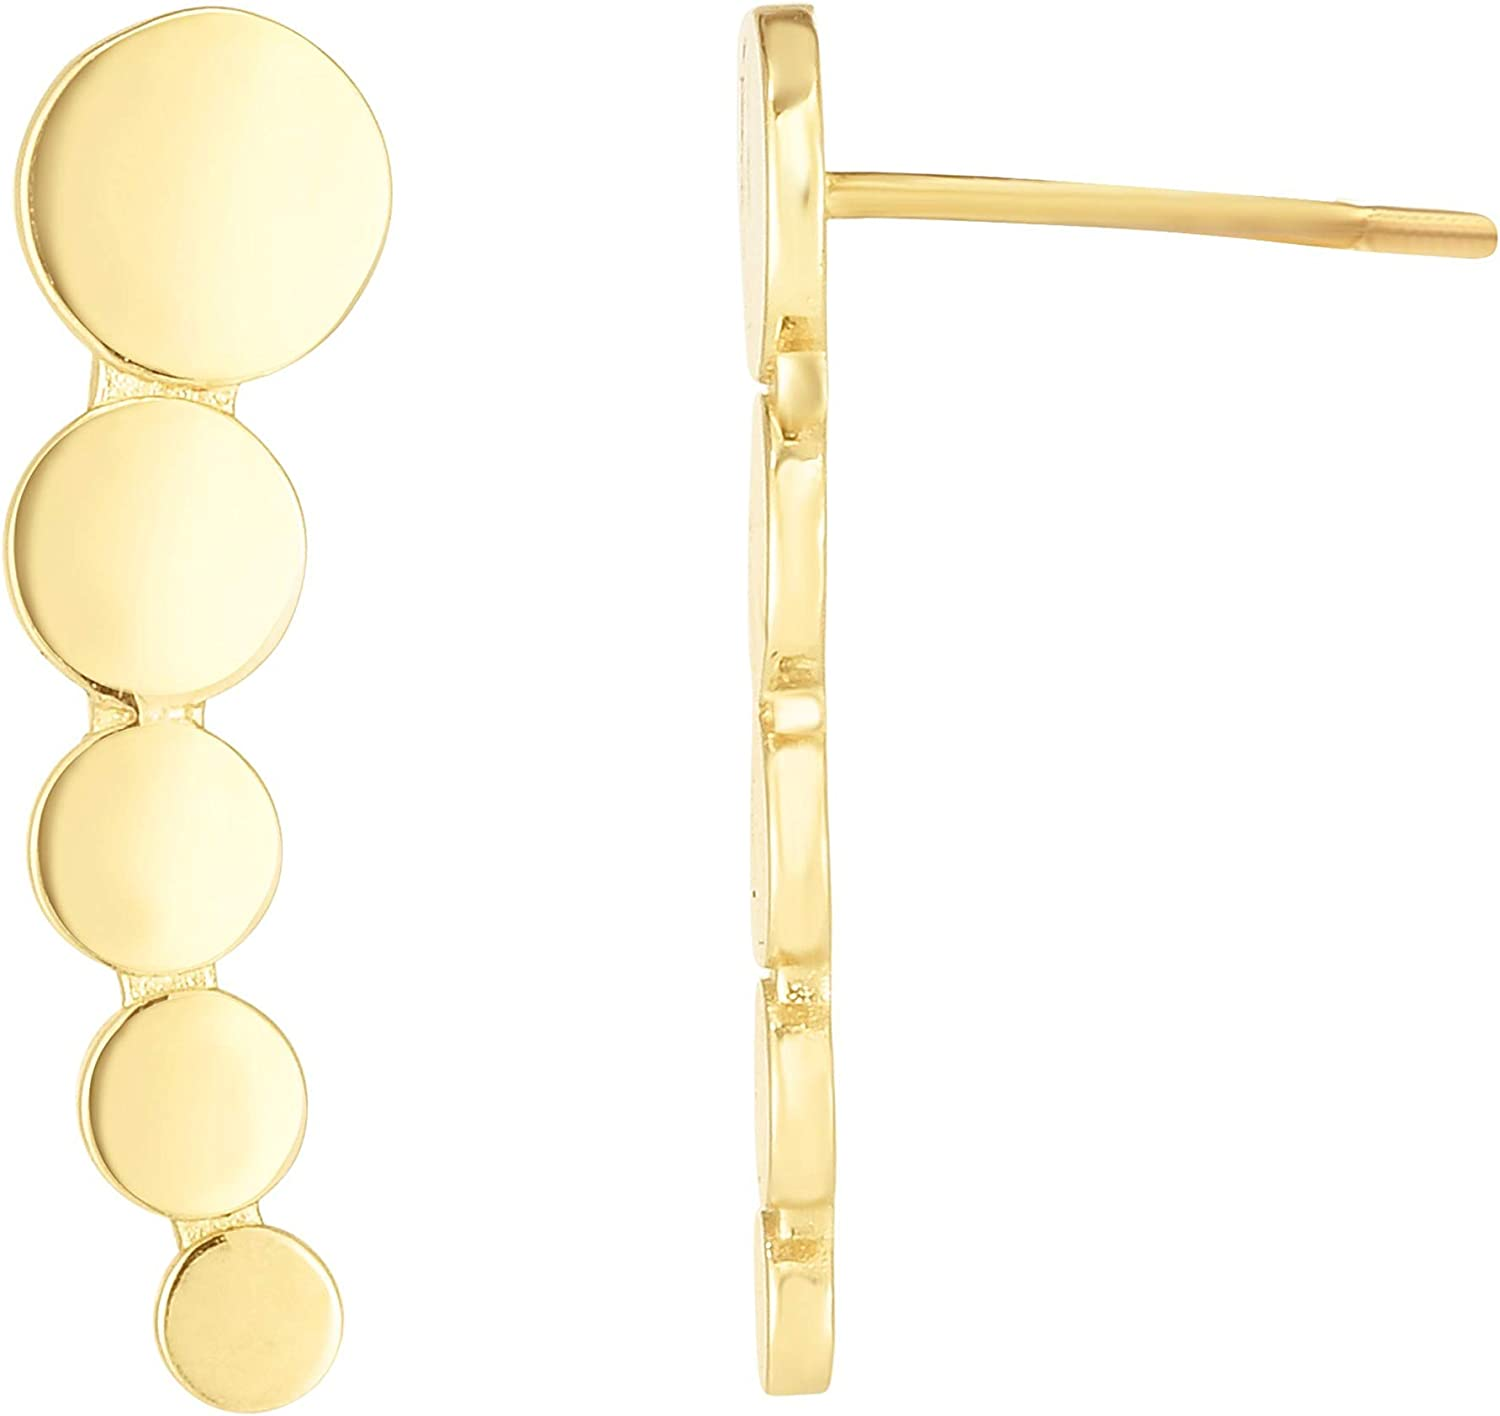 14kt Gold Yellow Finish 17.9x4.8mm Polished Curved Climber Bead Bar Earring with Push Back Clasp